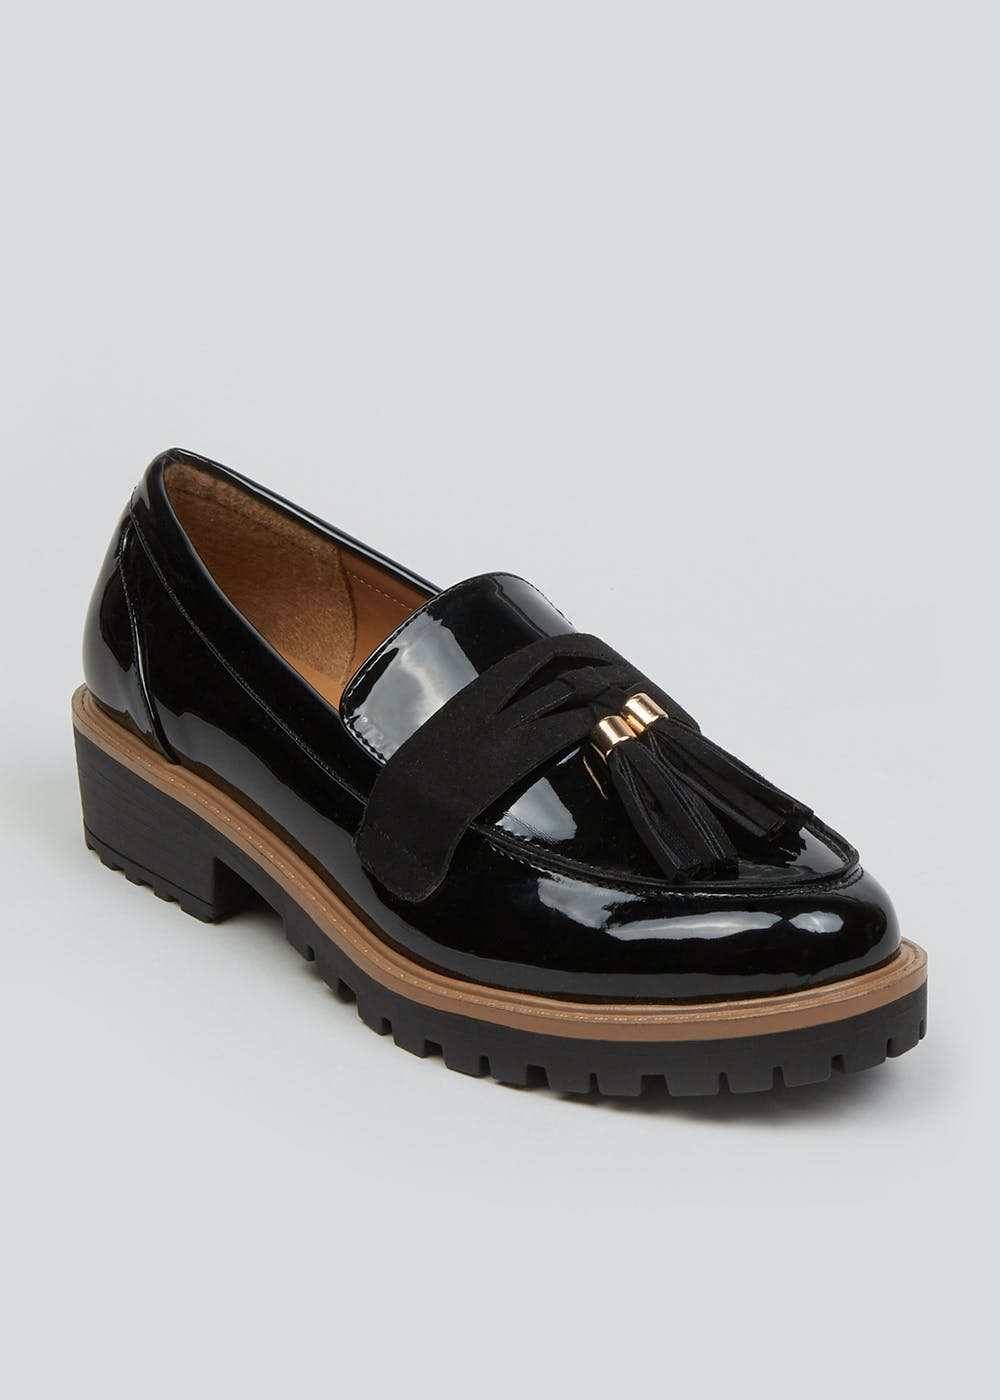 Patent Chunky Tassel Loafers – Black